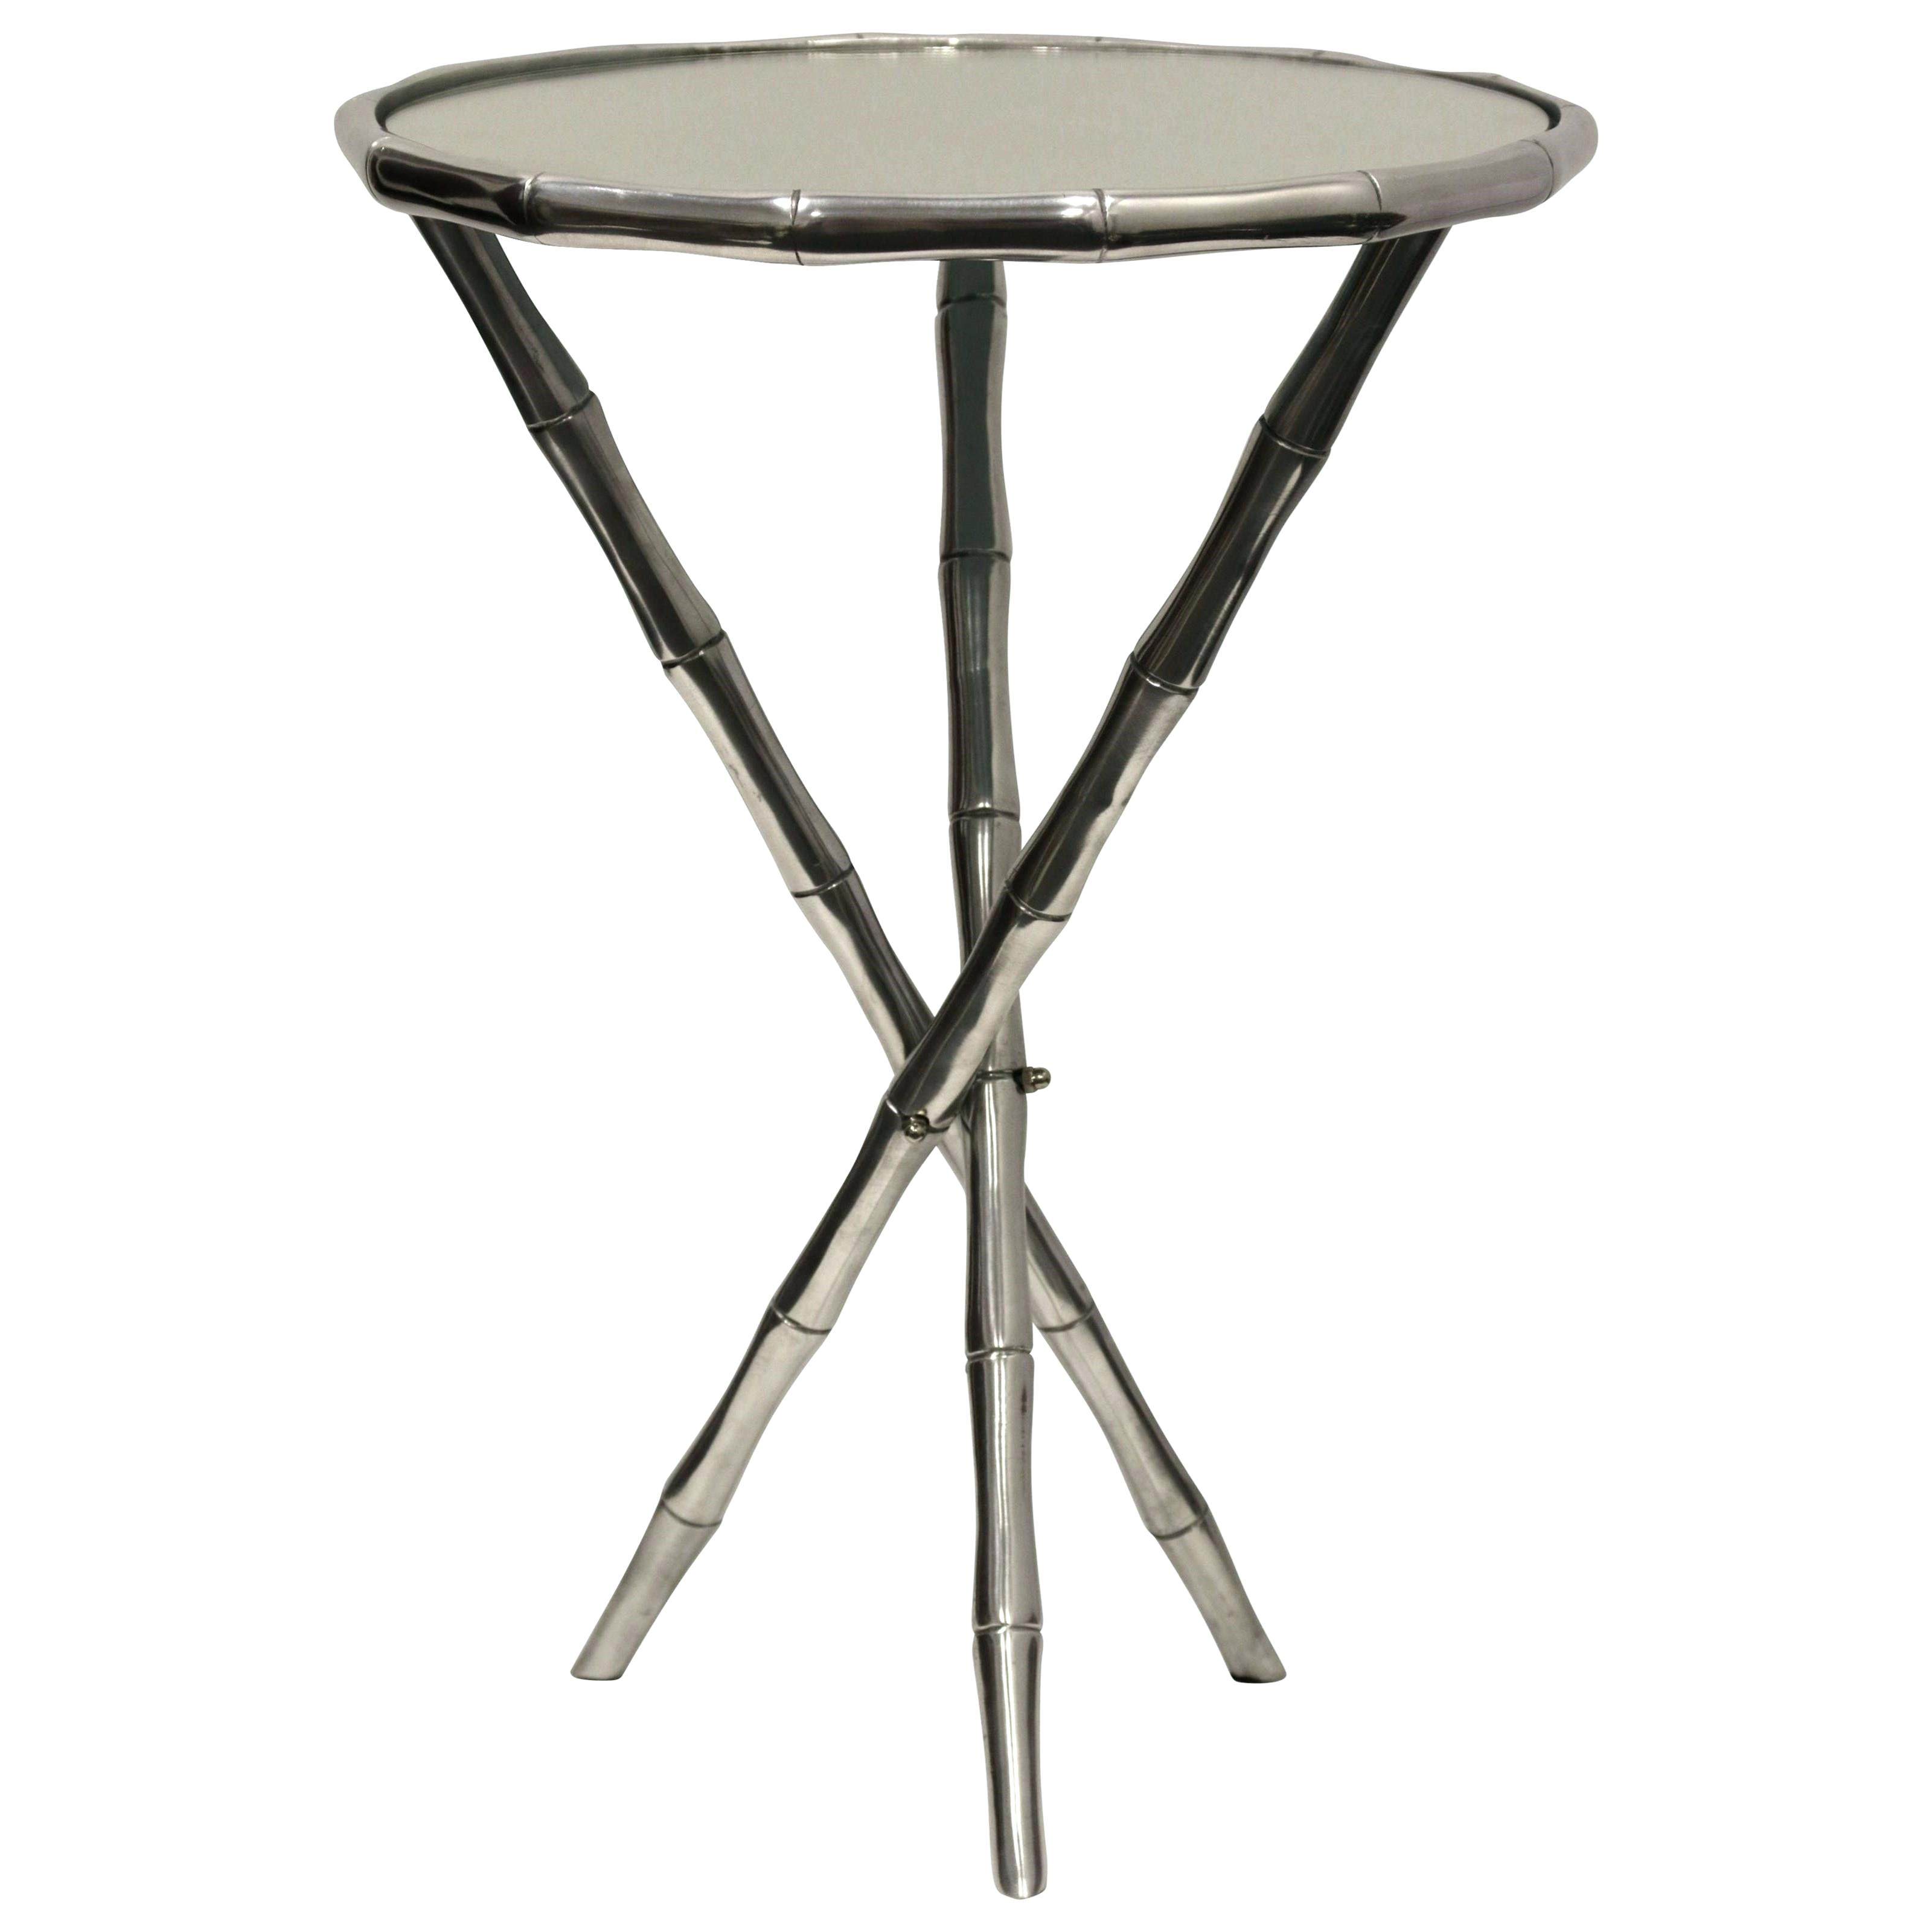 round metal accent table small tables occasional wrought iron glass top yamaha drum stool used ethan allen coffee cherry furniture homesense patio outdoor umbrella french bistro